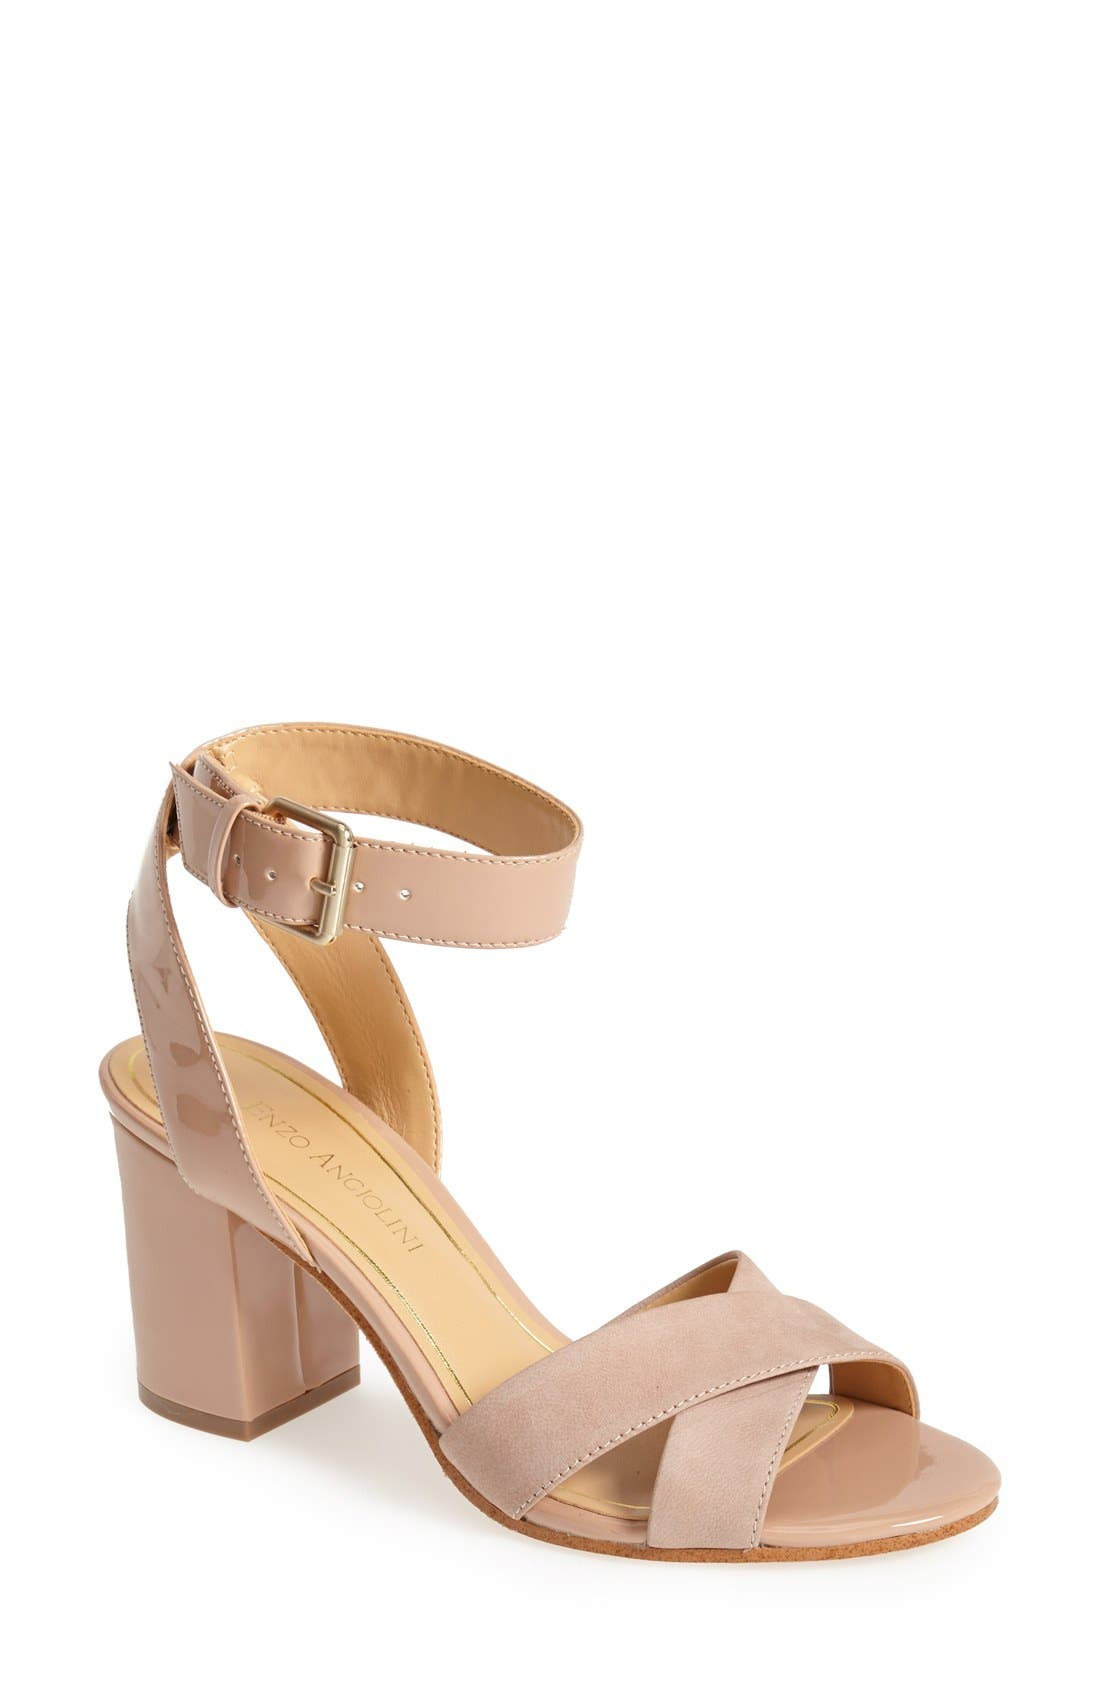 Alternate Image 1 Selected - Enzo Angiolini 'Gabele' Block Heel Sandal (Women)